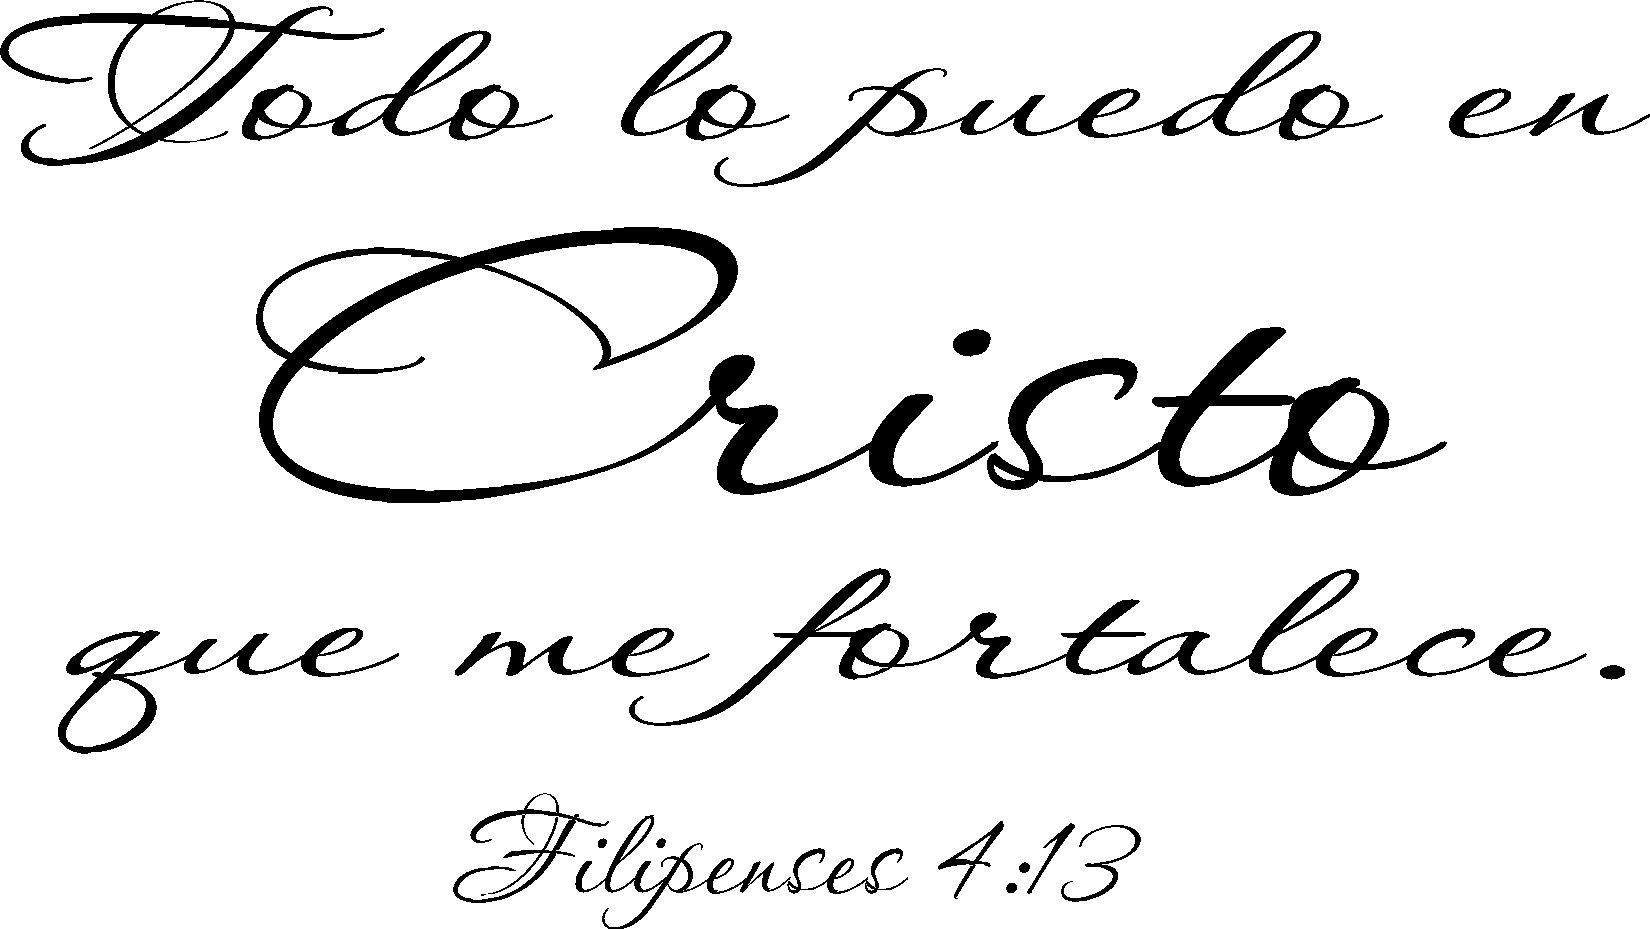 Filipenses 4:13 Spanish Vinyl Wall Decal Image